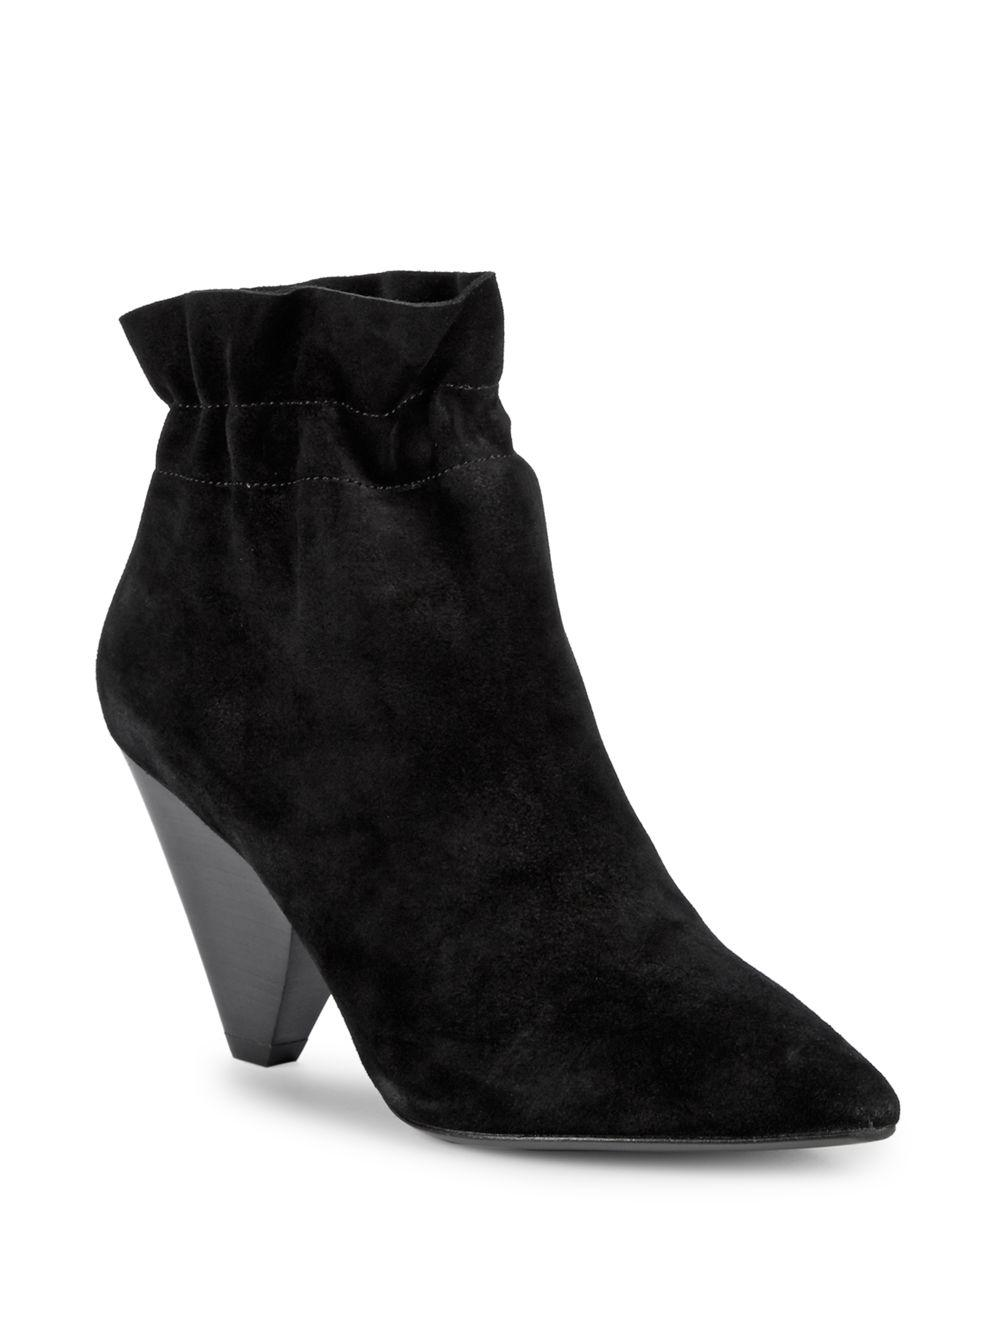 7fa92c2c7a1b6 Lyst - Ash Slip-on Suede Booties in Black